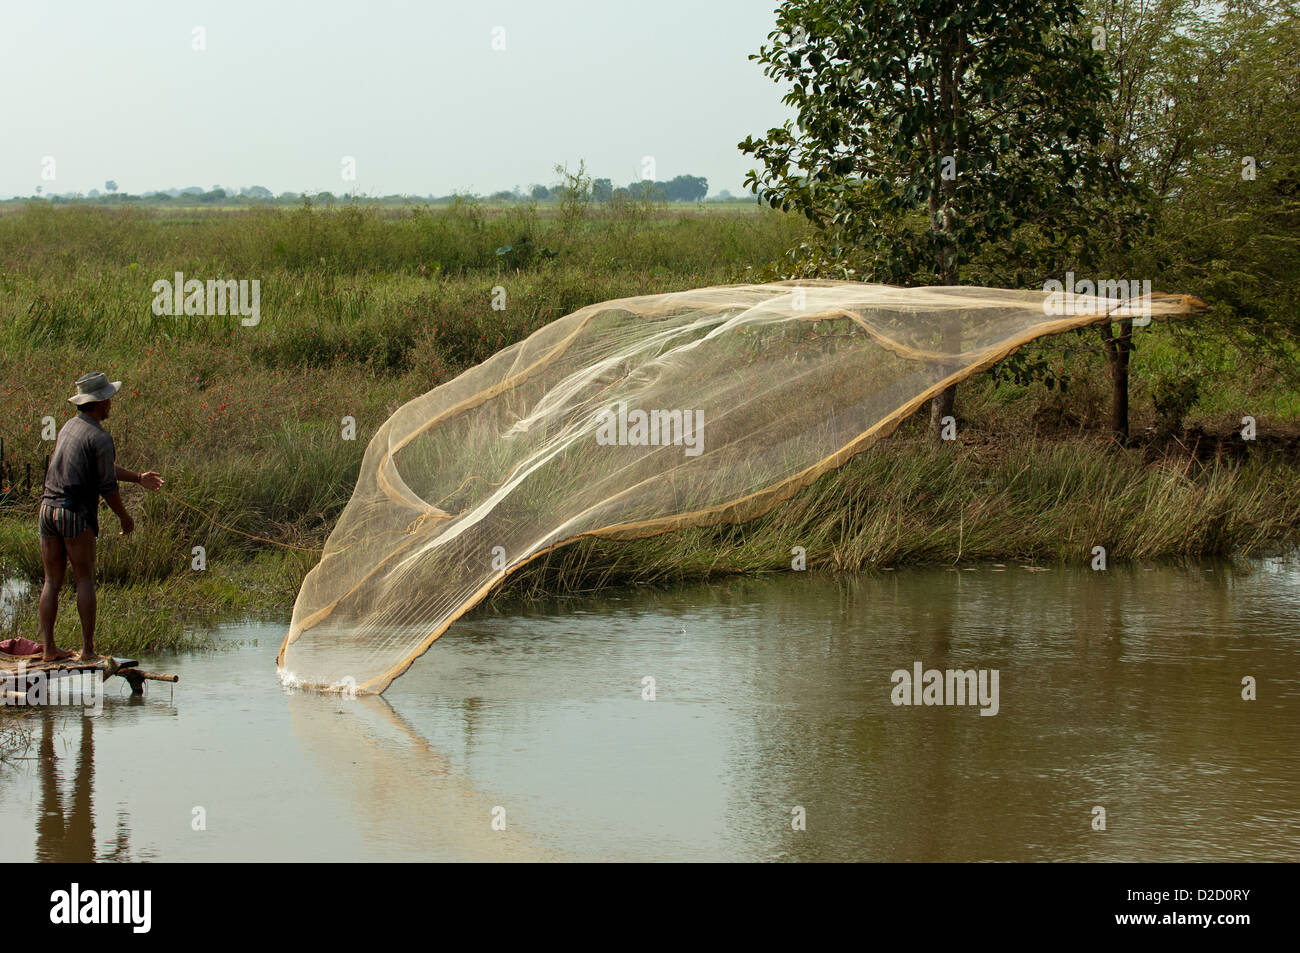 Fisherman throwing a cast net in a river, Battambang, Cambodia - Stock Image